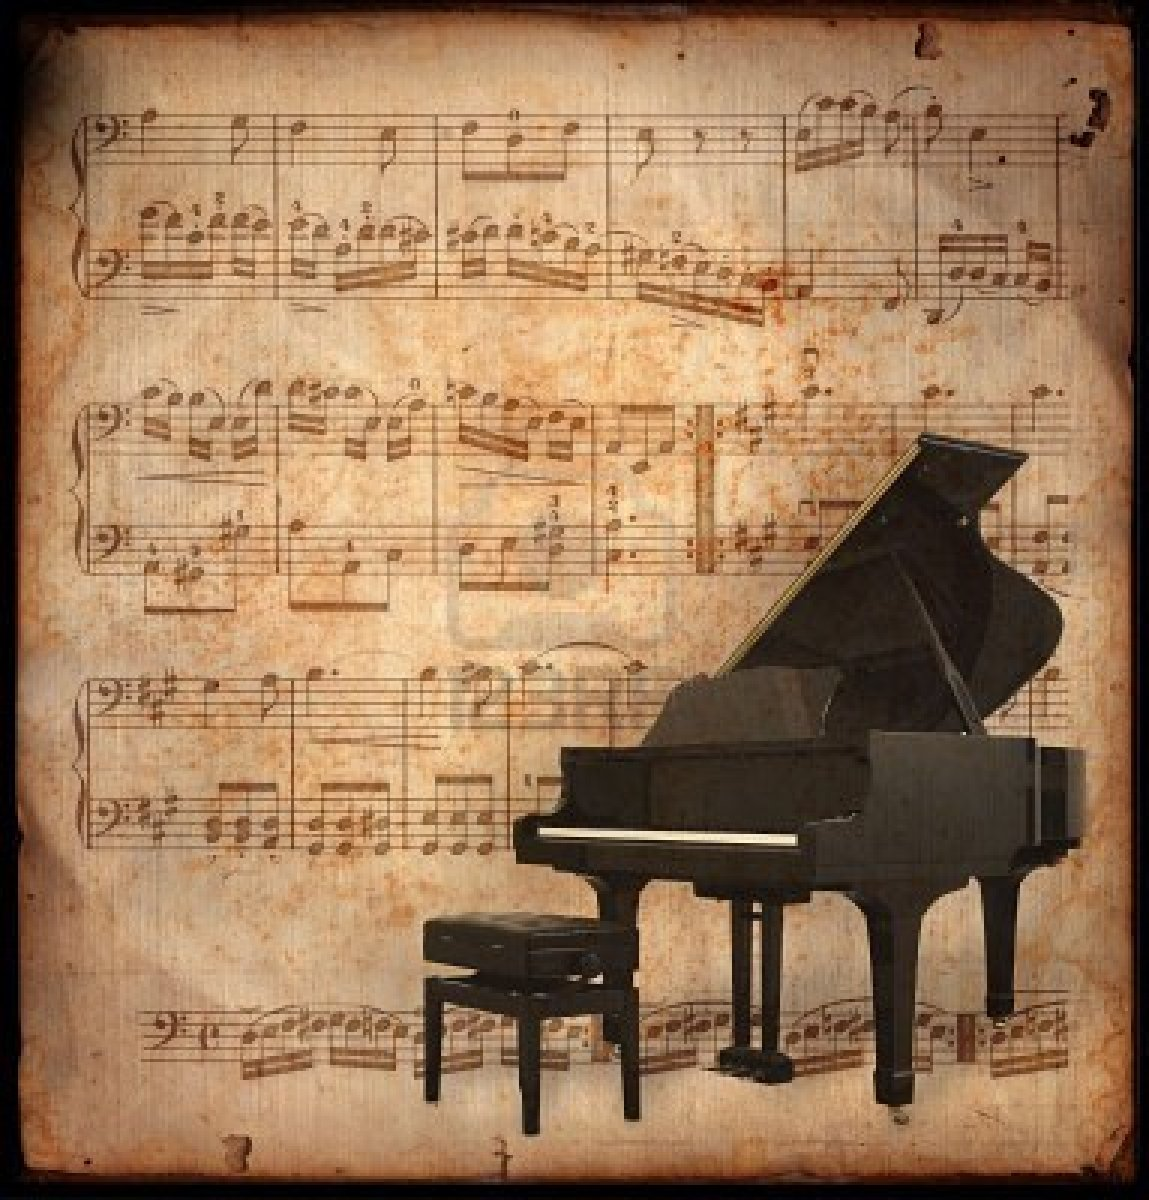 Piano Wallpapers For Widescreen Desktop Pc Full Hd Vintage Music Note Background Free 1149x1200 Download Hd Wallpaper Wallpapertip